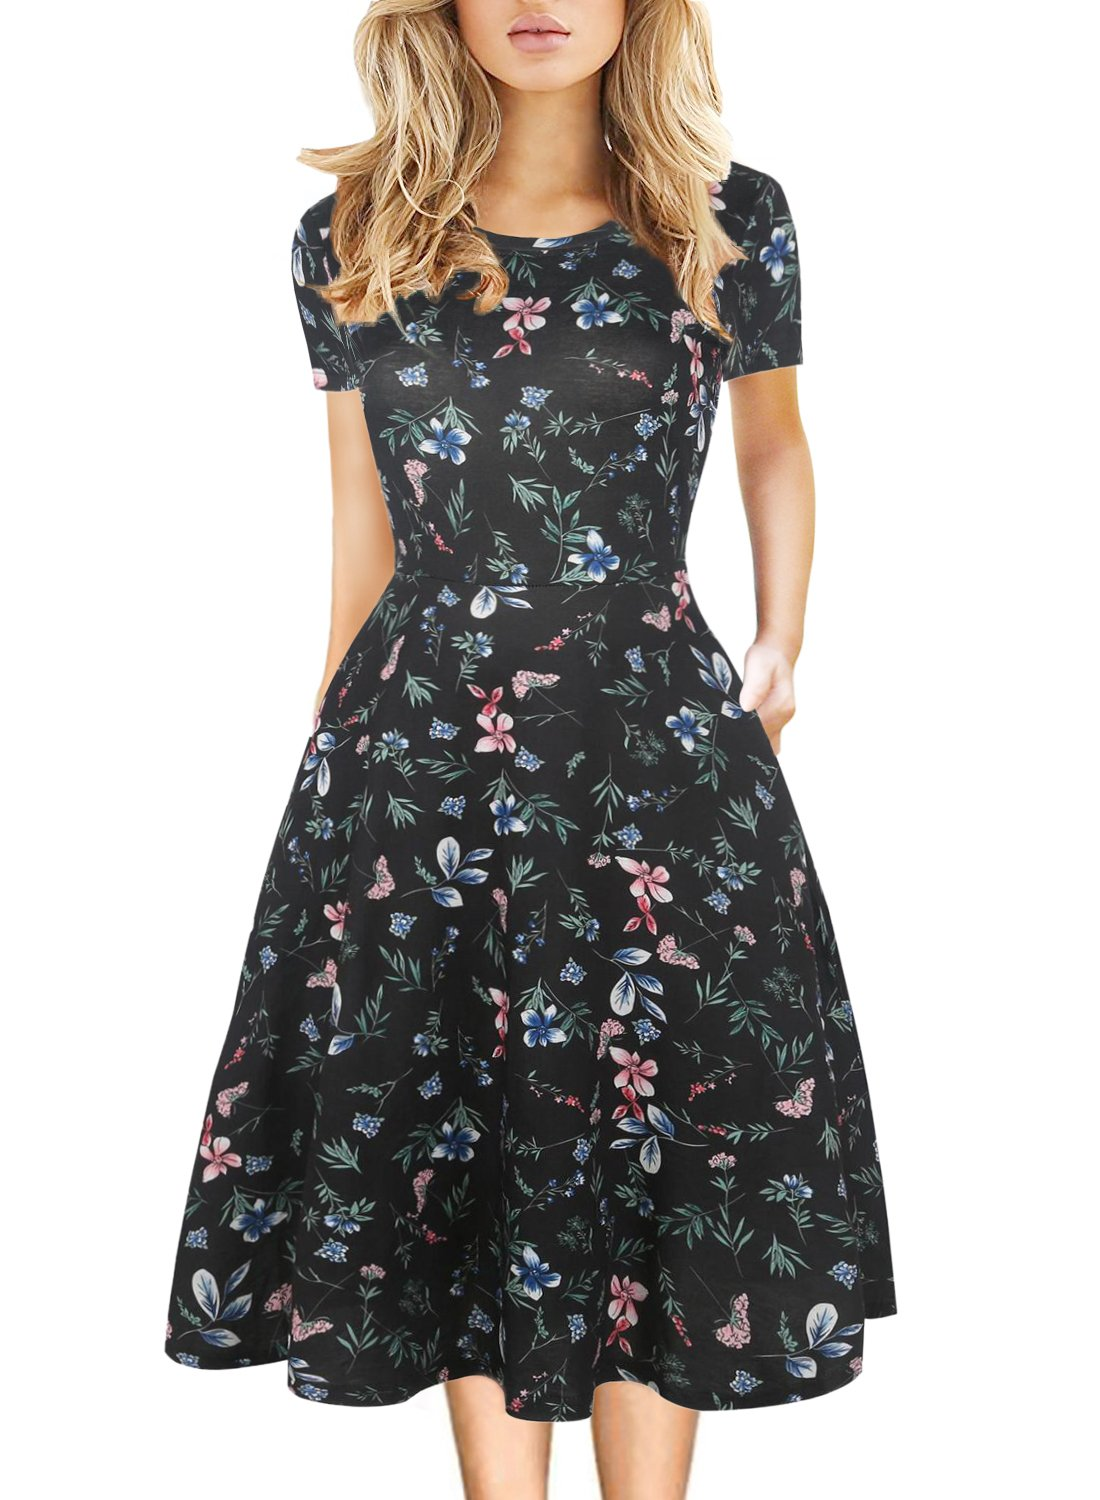 Women's Vintage Work Casual Dresses Round Neck Floral Pocket Tunic Cocktail Party A-Line Dress 162 Black M by HELYO